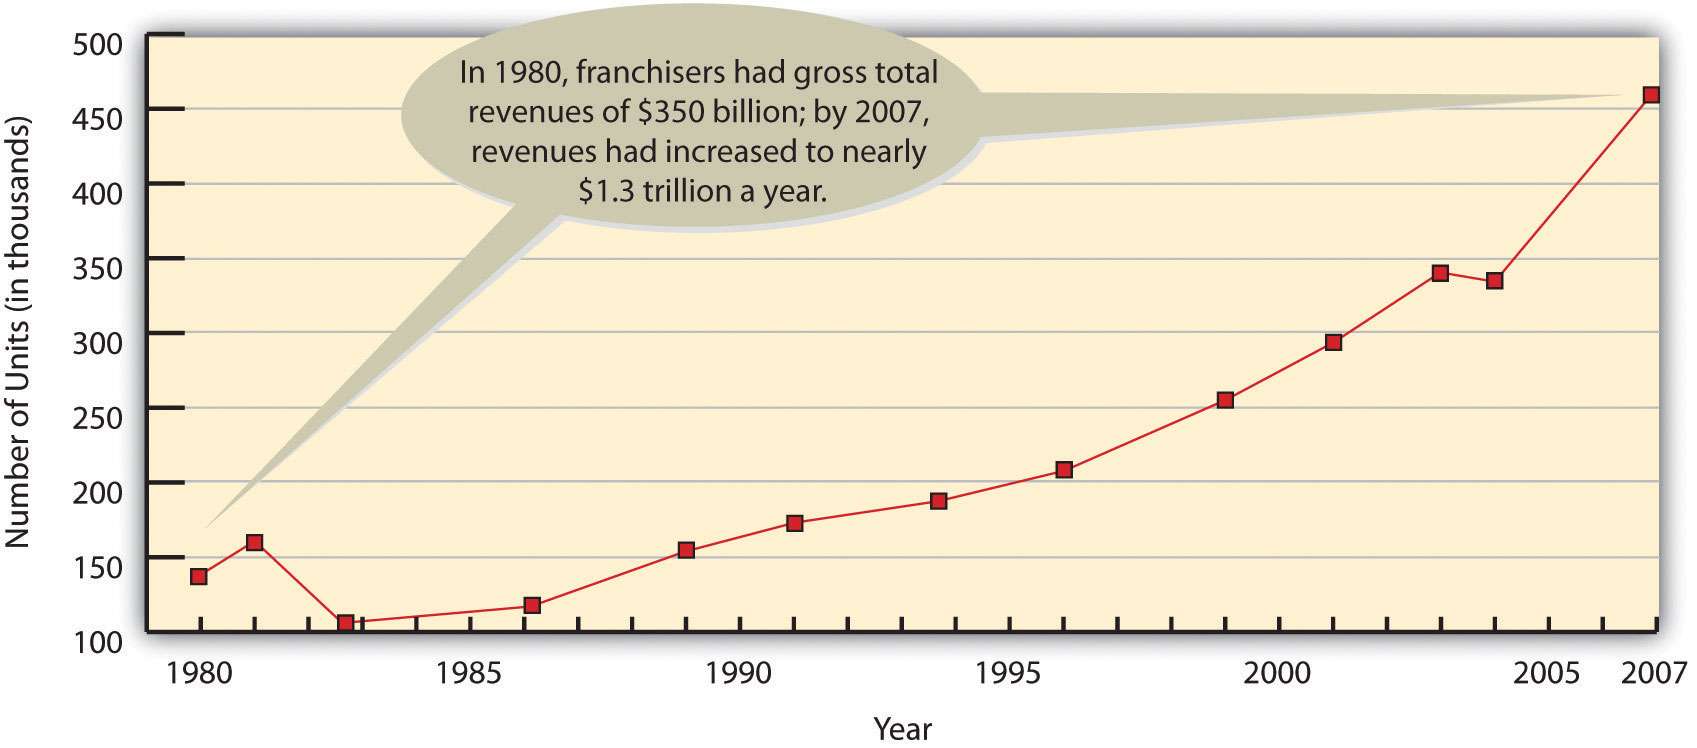 The Growth of Franchising, 1980-2007: In 1980, franchisers had gross total revenues of $350 billion; by 2007, revenues had increased to nearly $1.3 trillion a year.